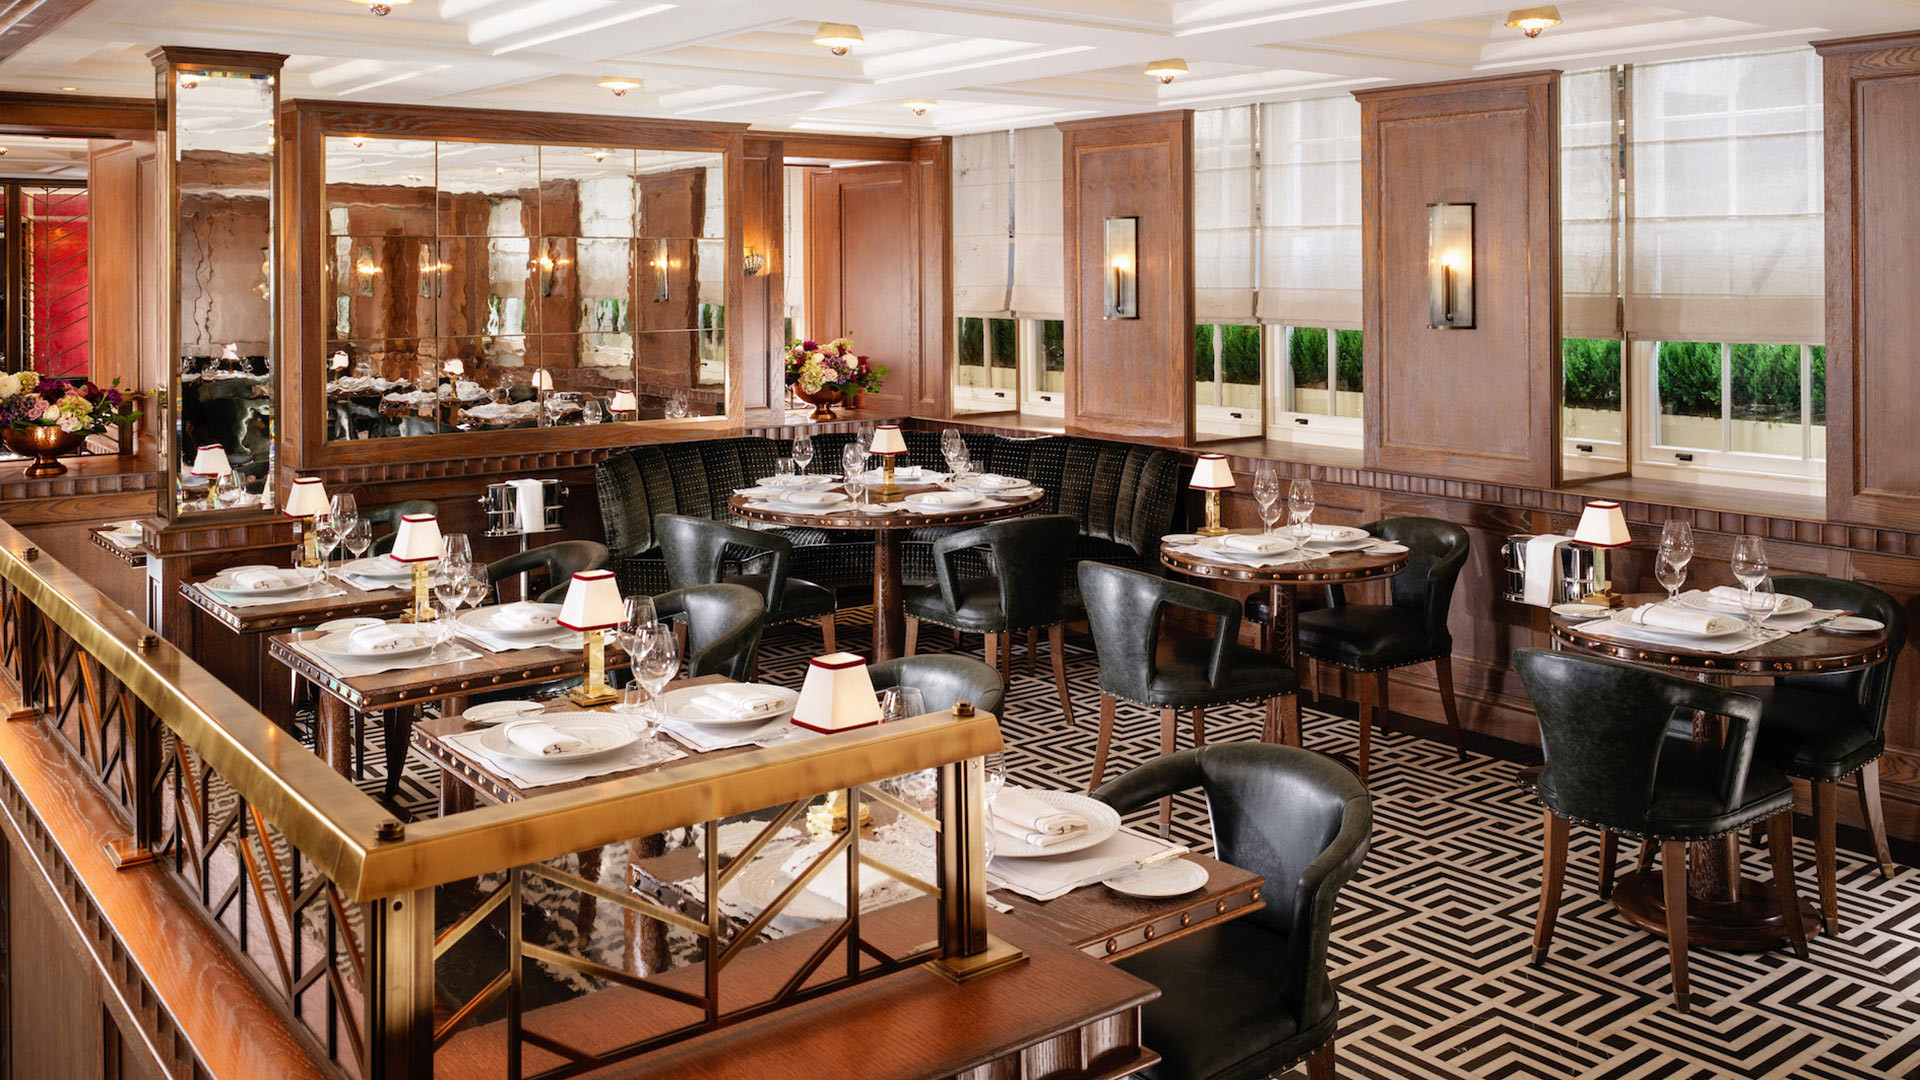 The dining room at Ormer